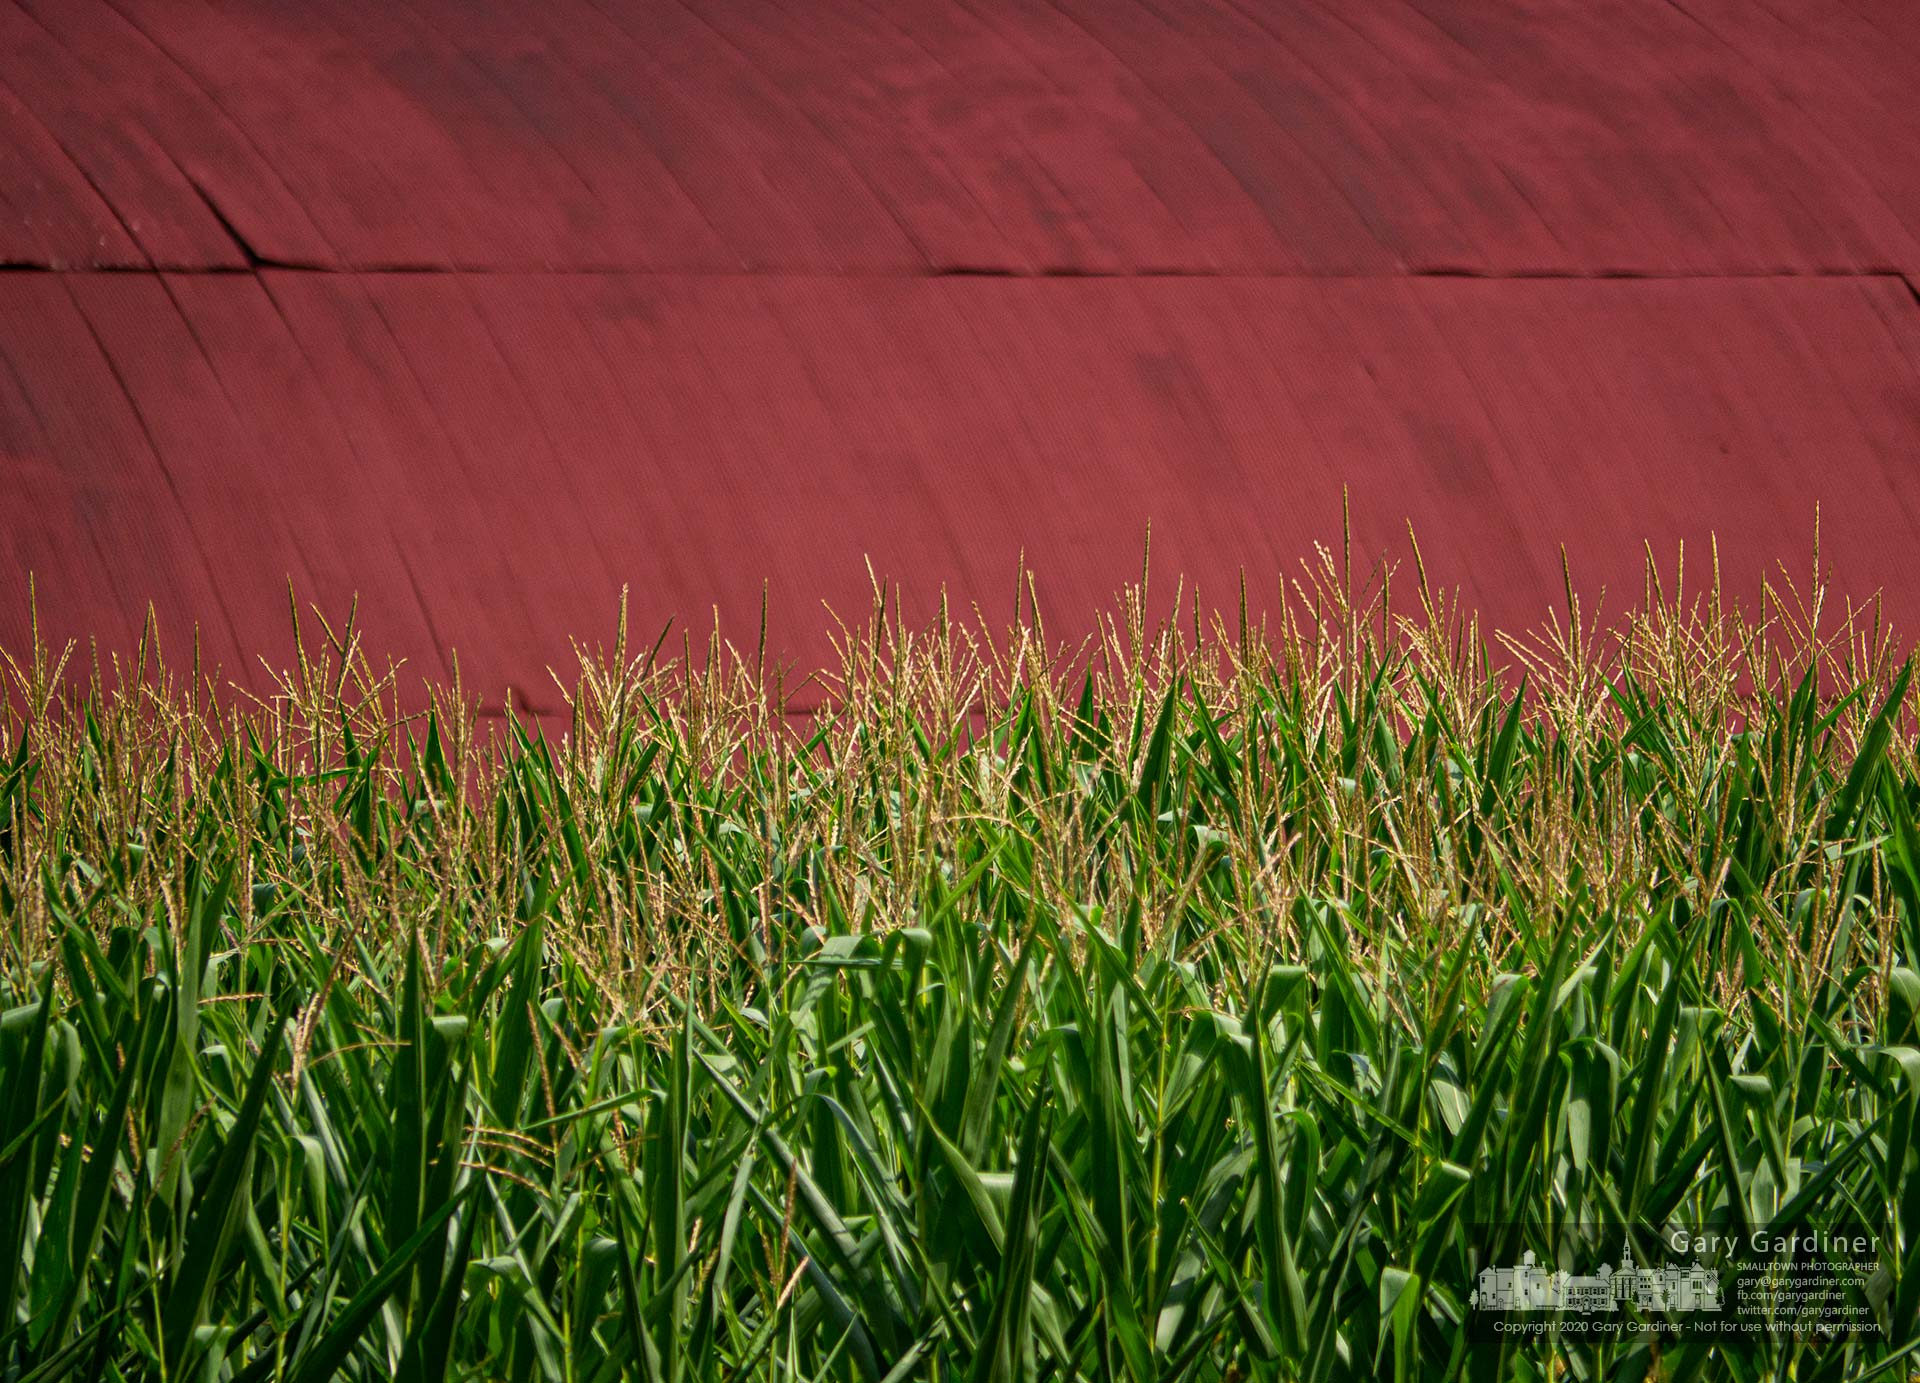 Golden tassels on green corn stalks contrast with the rich red roof color of the barn on the Braun Farm on Cleveland Ave. My Final Photo for Aug. 10, 2020.